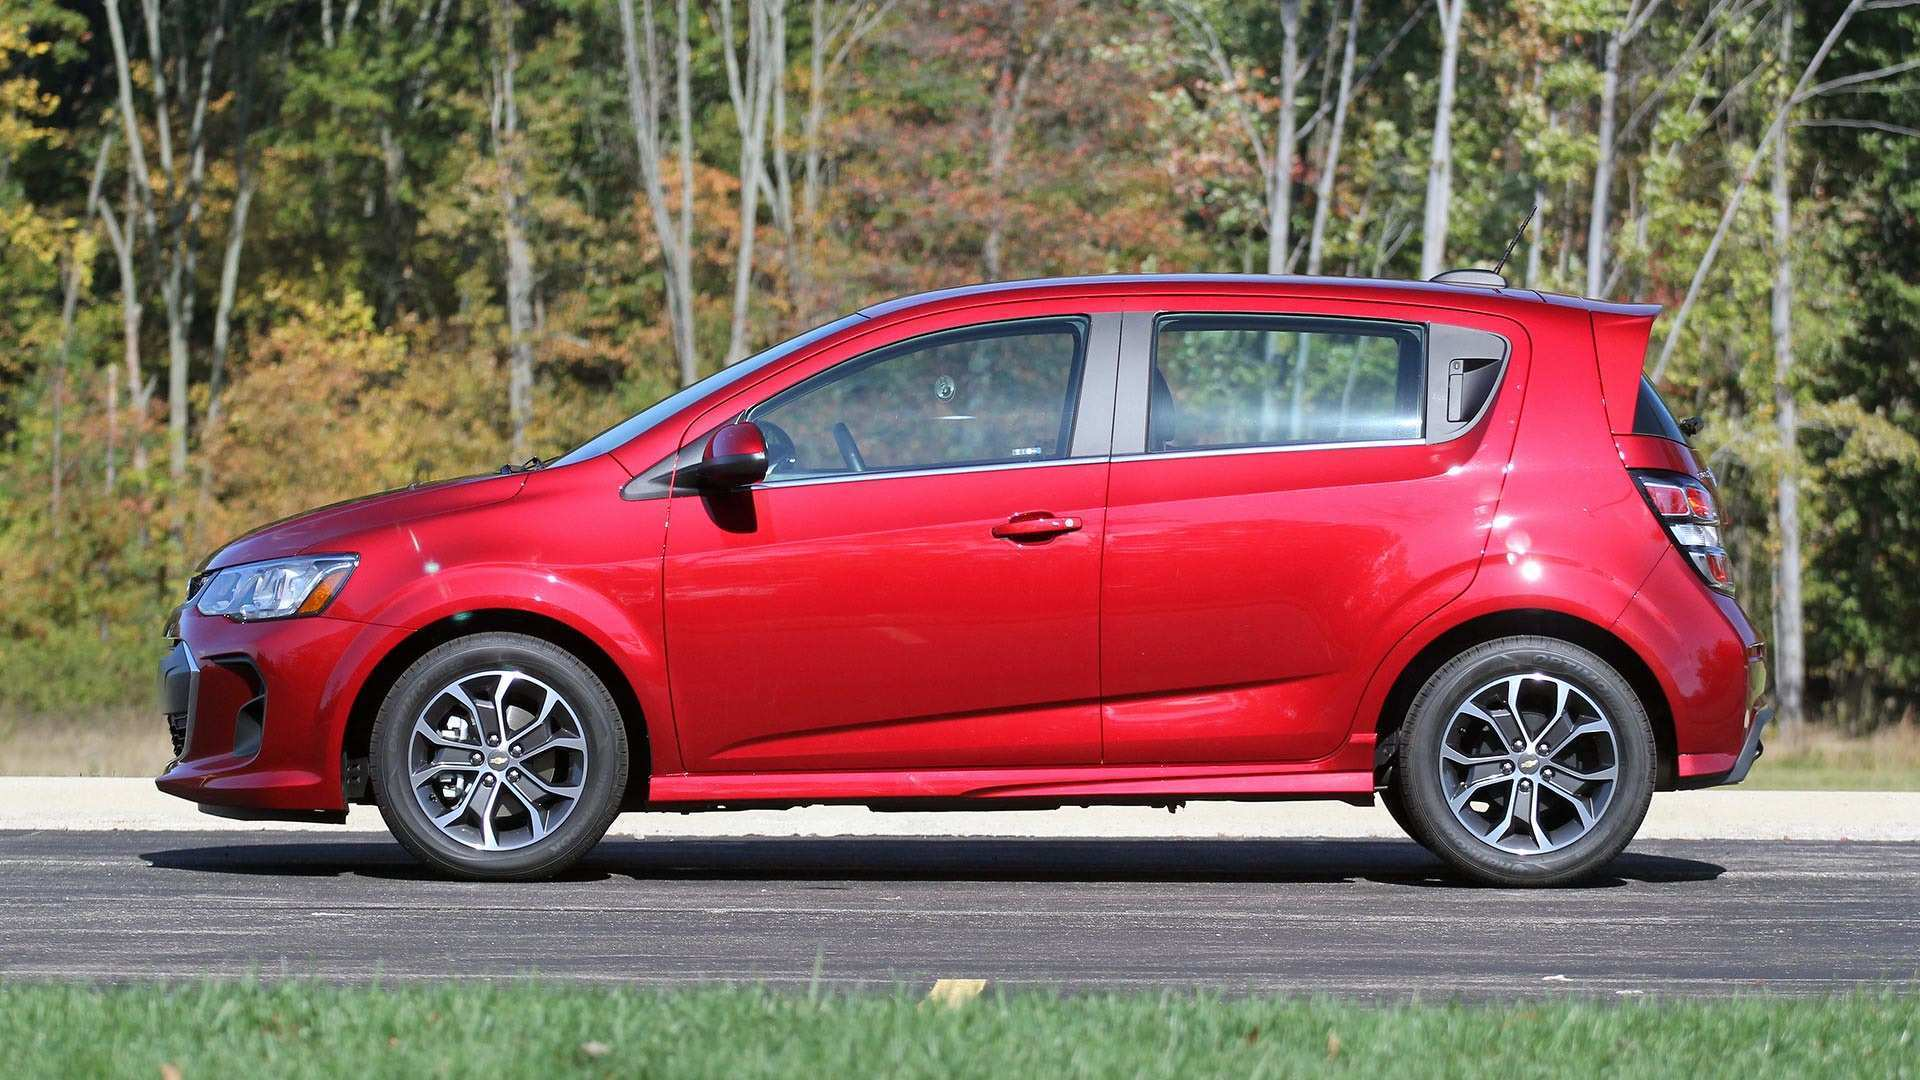 20 New 2020 Chevy Sonic Review for 2020 Chevy Sonic